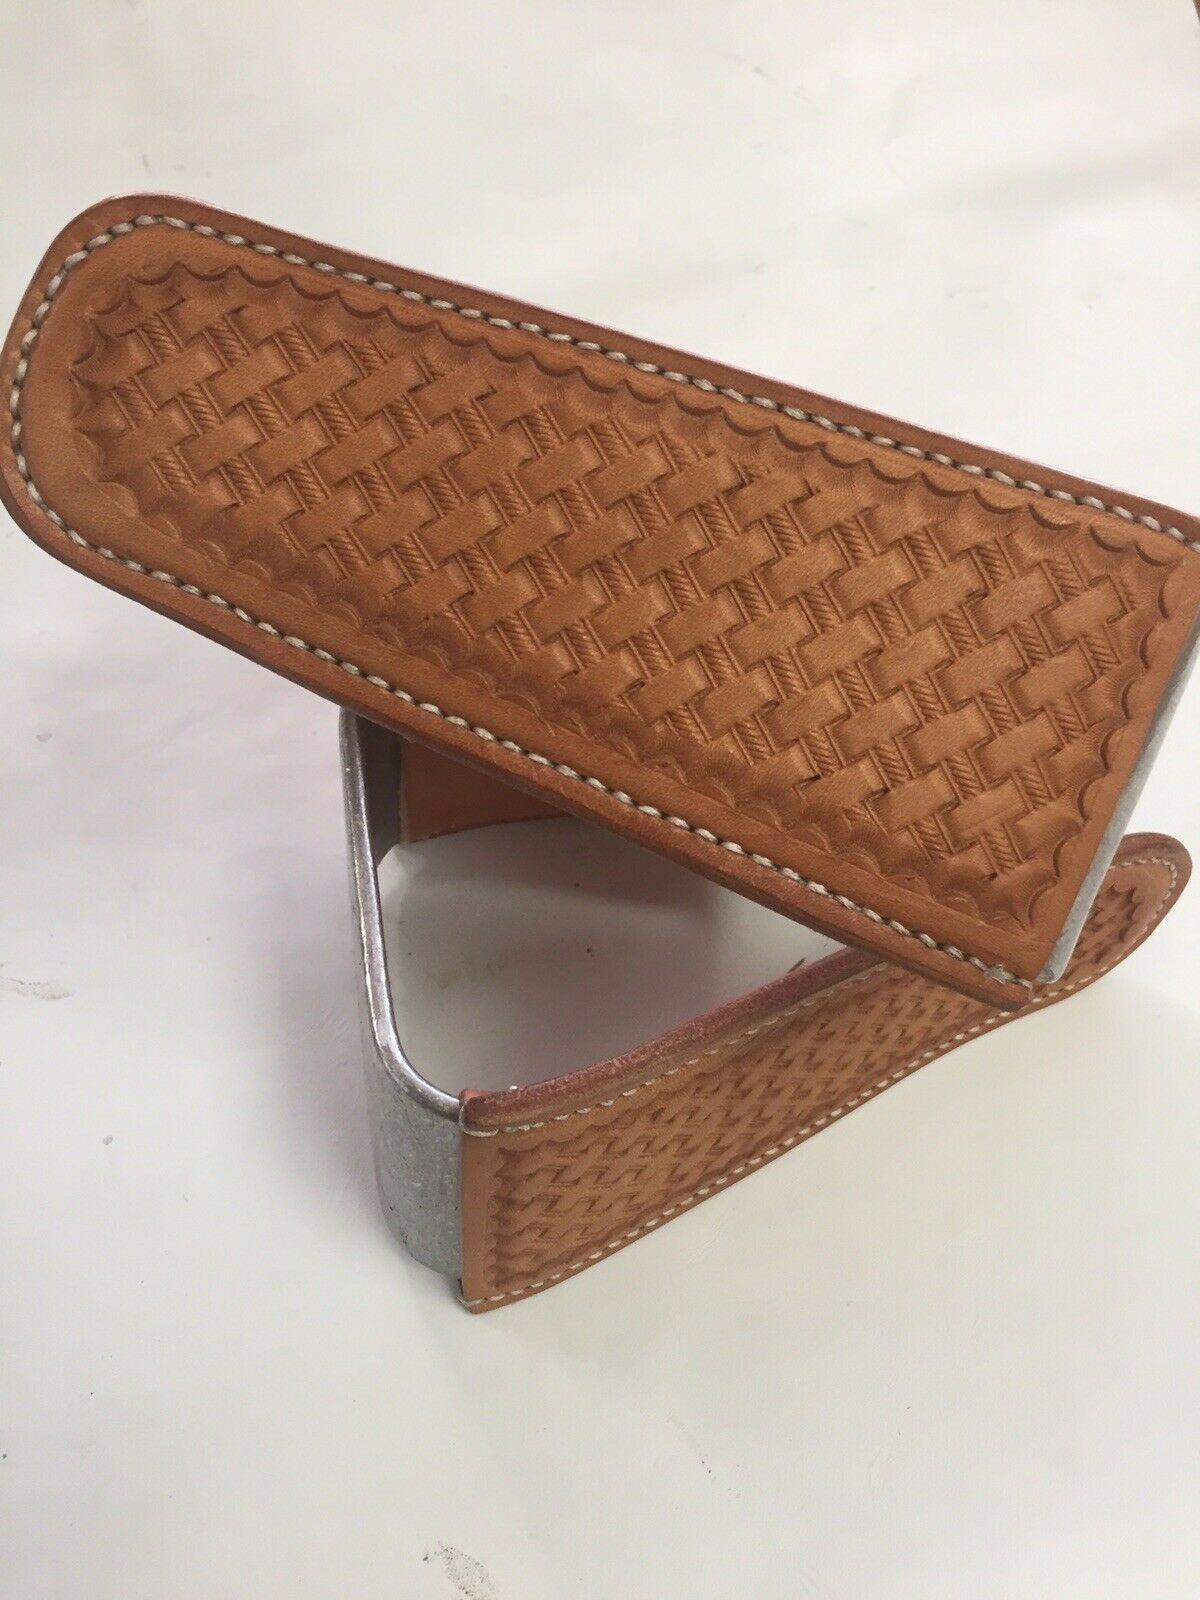 BRe nuovo Original Crooked Stirrups Roper stile With Basket Weave Leather